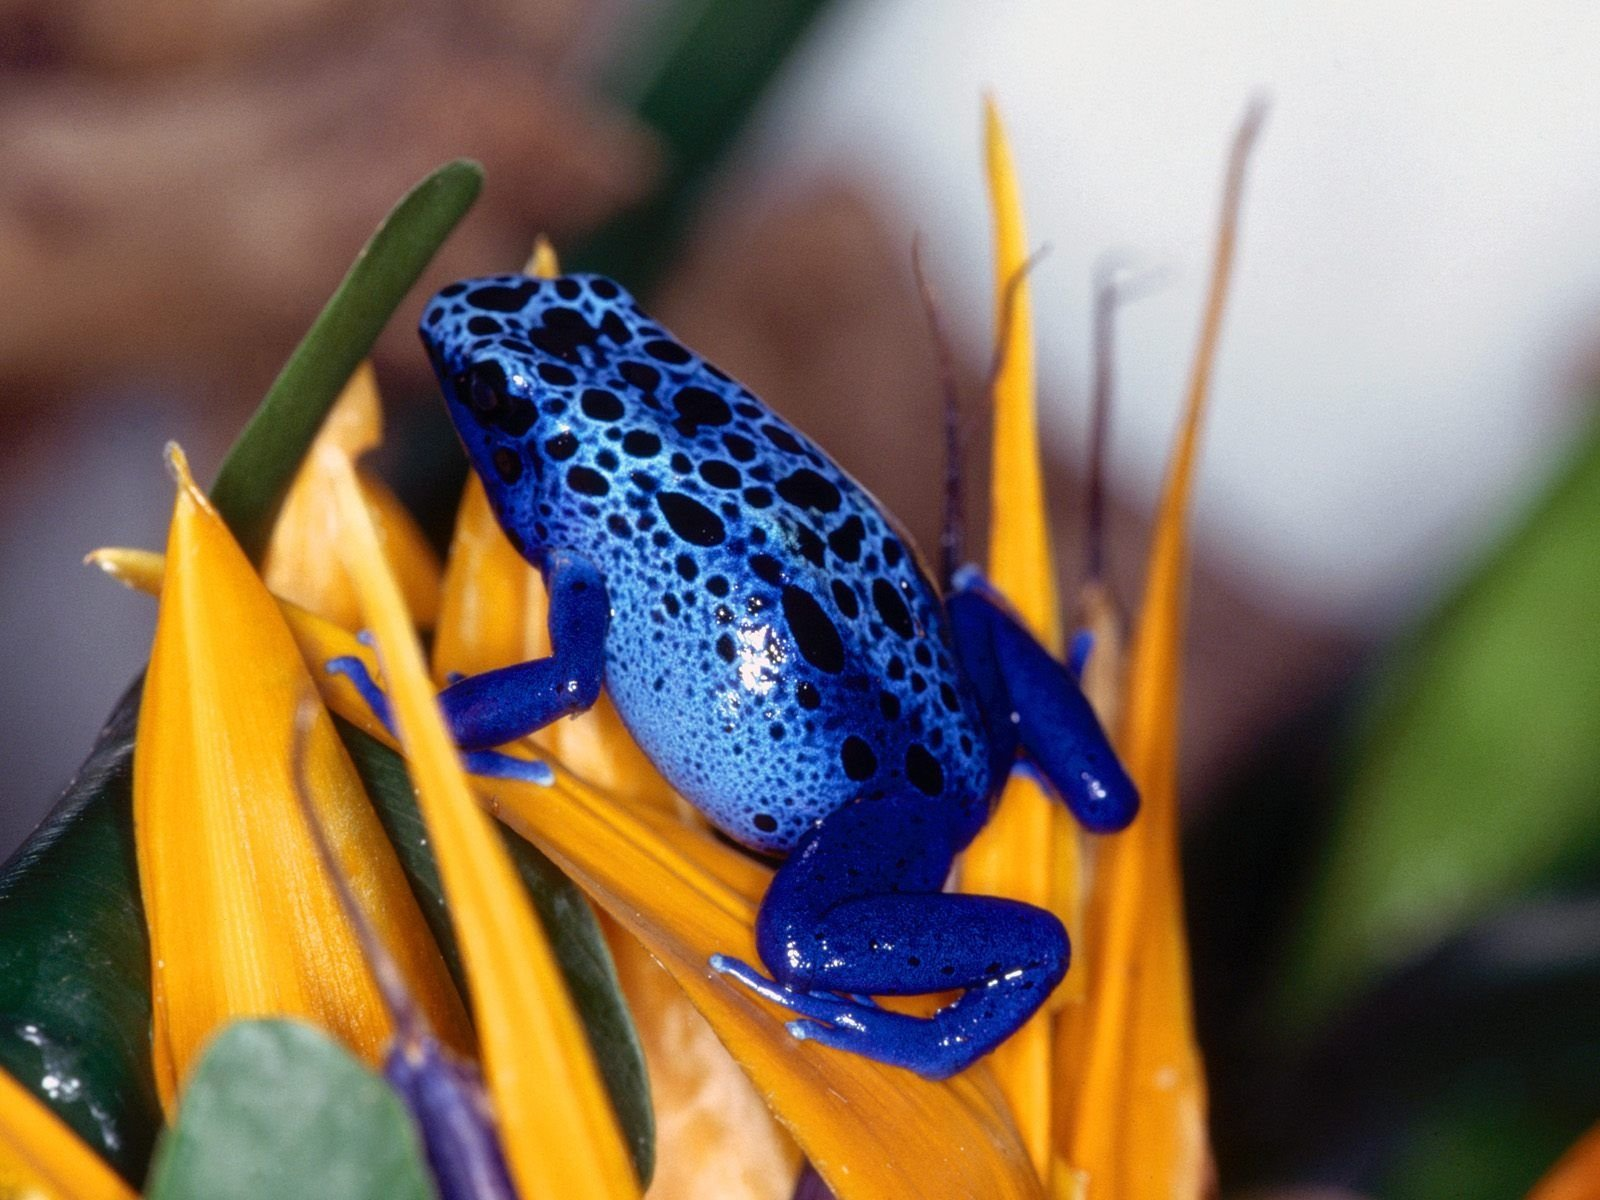 Animal - Poison dart frog  Frog Blue Poison Dart Frog Wallpaper